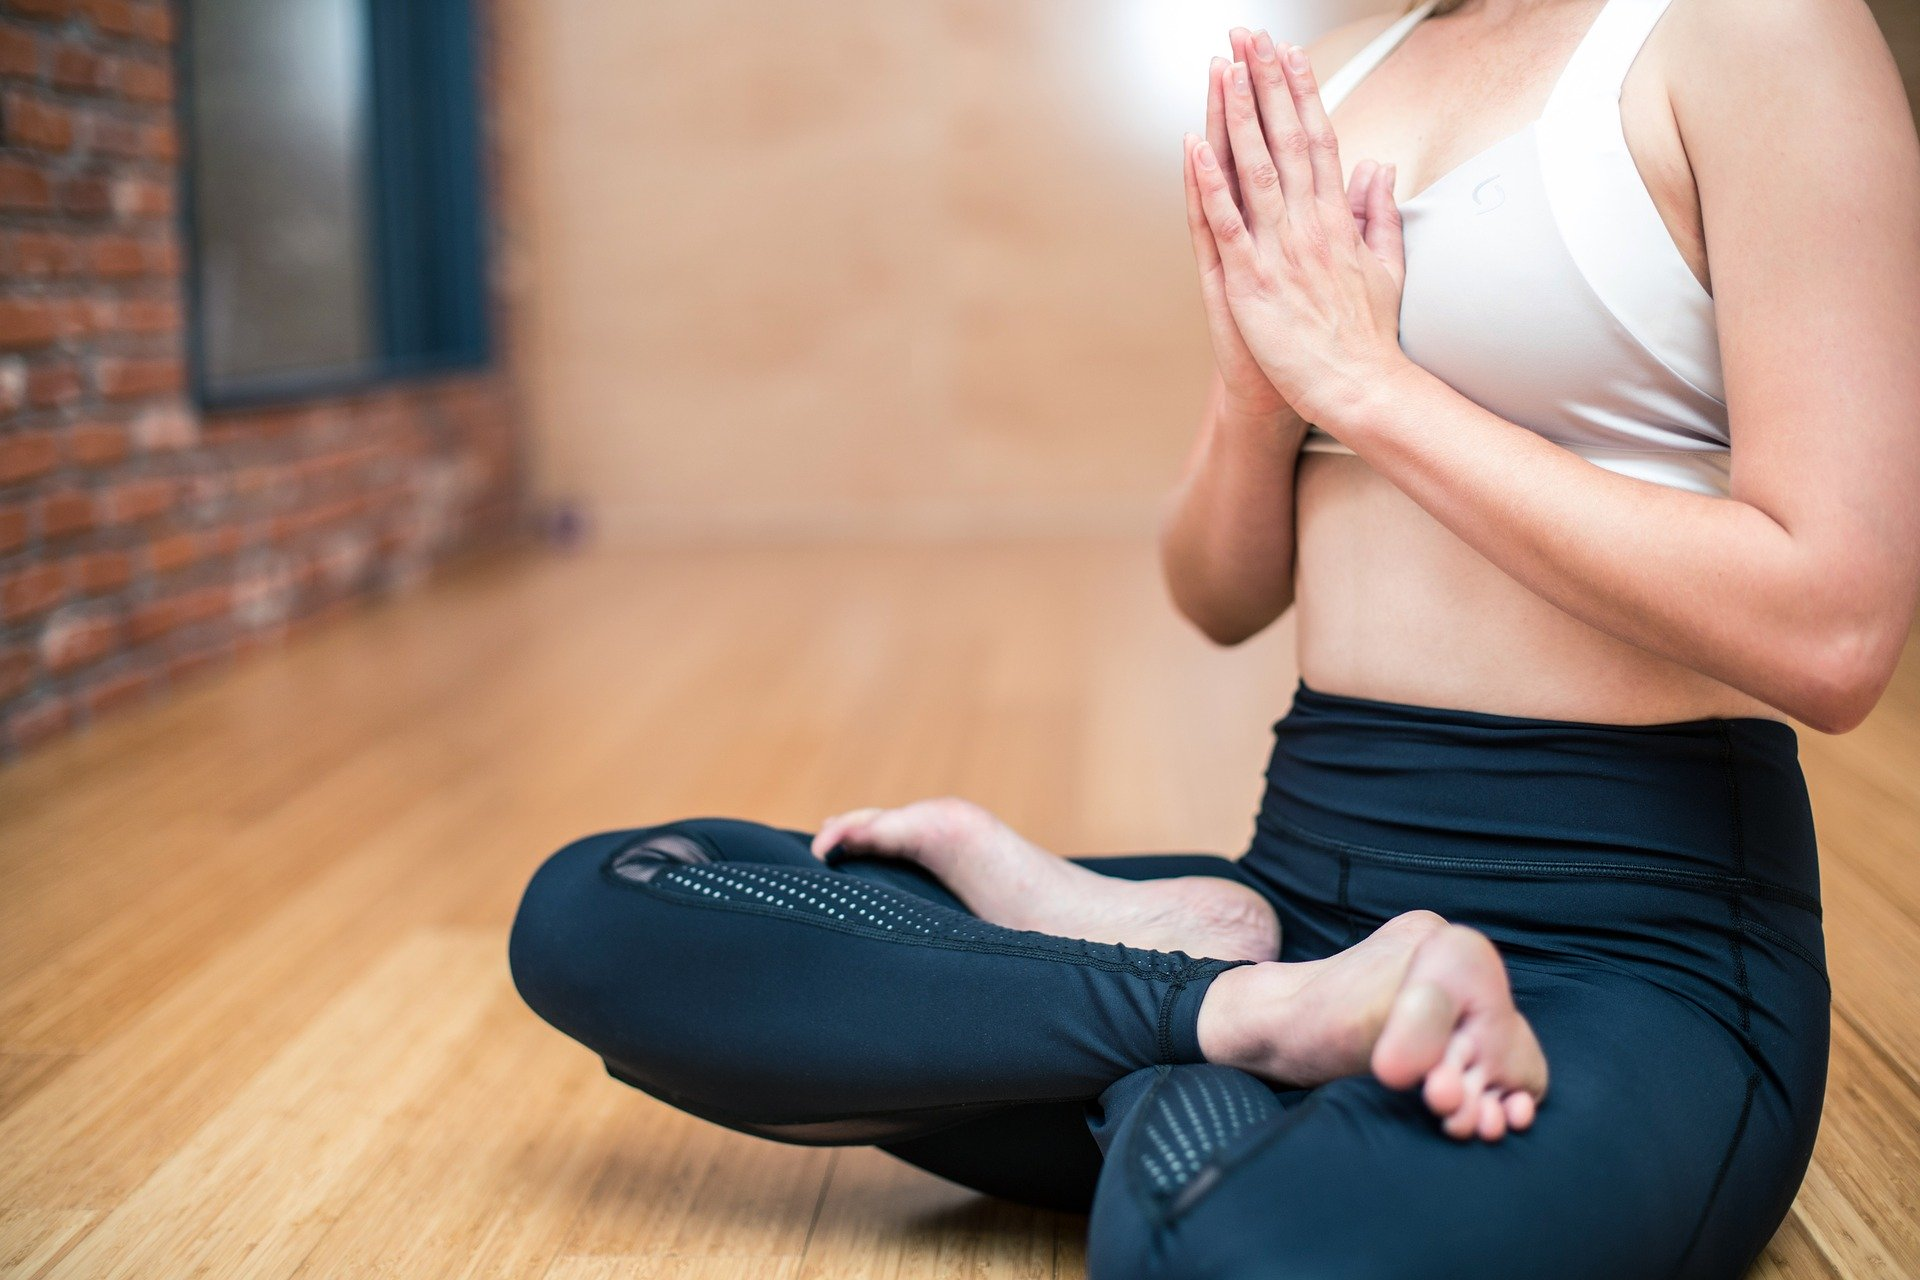 a body poised in a yoga, cross-legged position on wood flooring. head is out of frame.